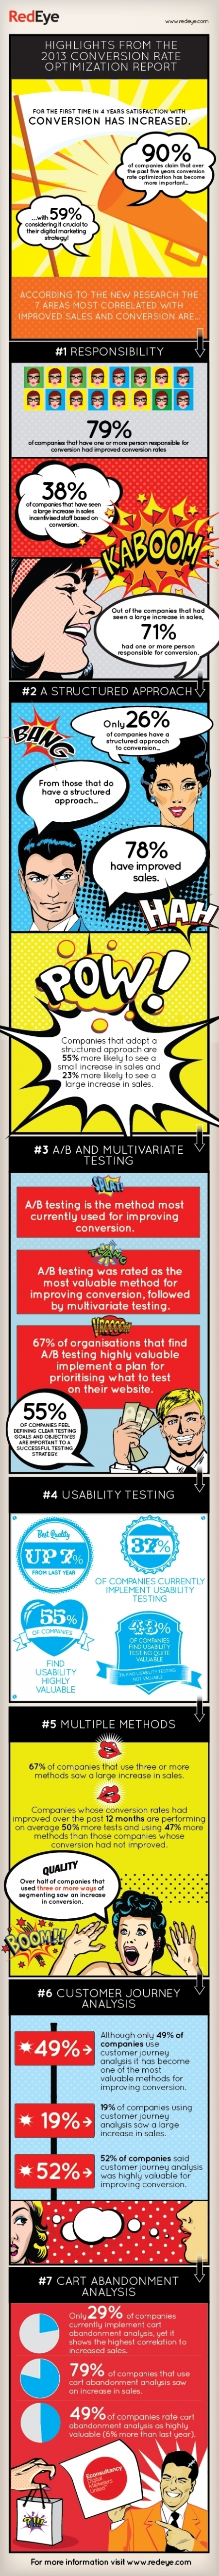 Satisfaction with conversion rates has increased [infographic] - Econsultancy | #TheMarketingAutomationAlert | marketing automation | Scoop.it